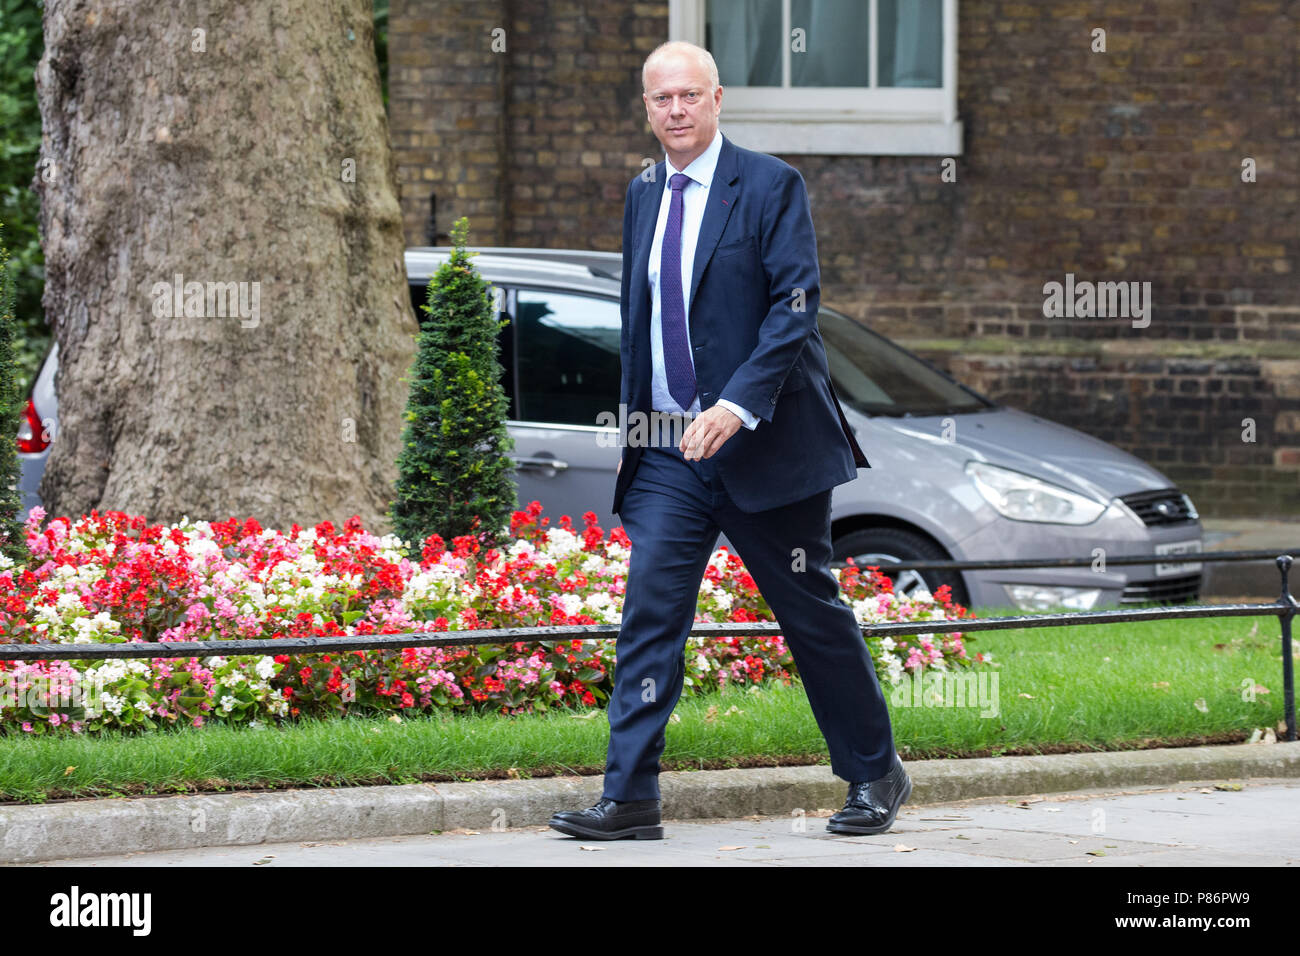 London, UK. 10th July, 2018. Chris Grayling MP, Secretary of State for Transport, arrives at 10 Downing Street for the first Cabinet meeting since the resignations as Ministers of David Davis MP and Boris Johnson MP. Credit: Mark Kerrison/Alamy Live News - Stock Image